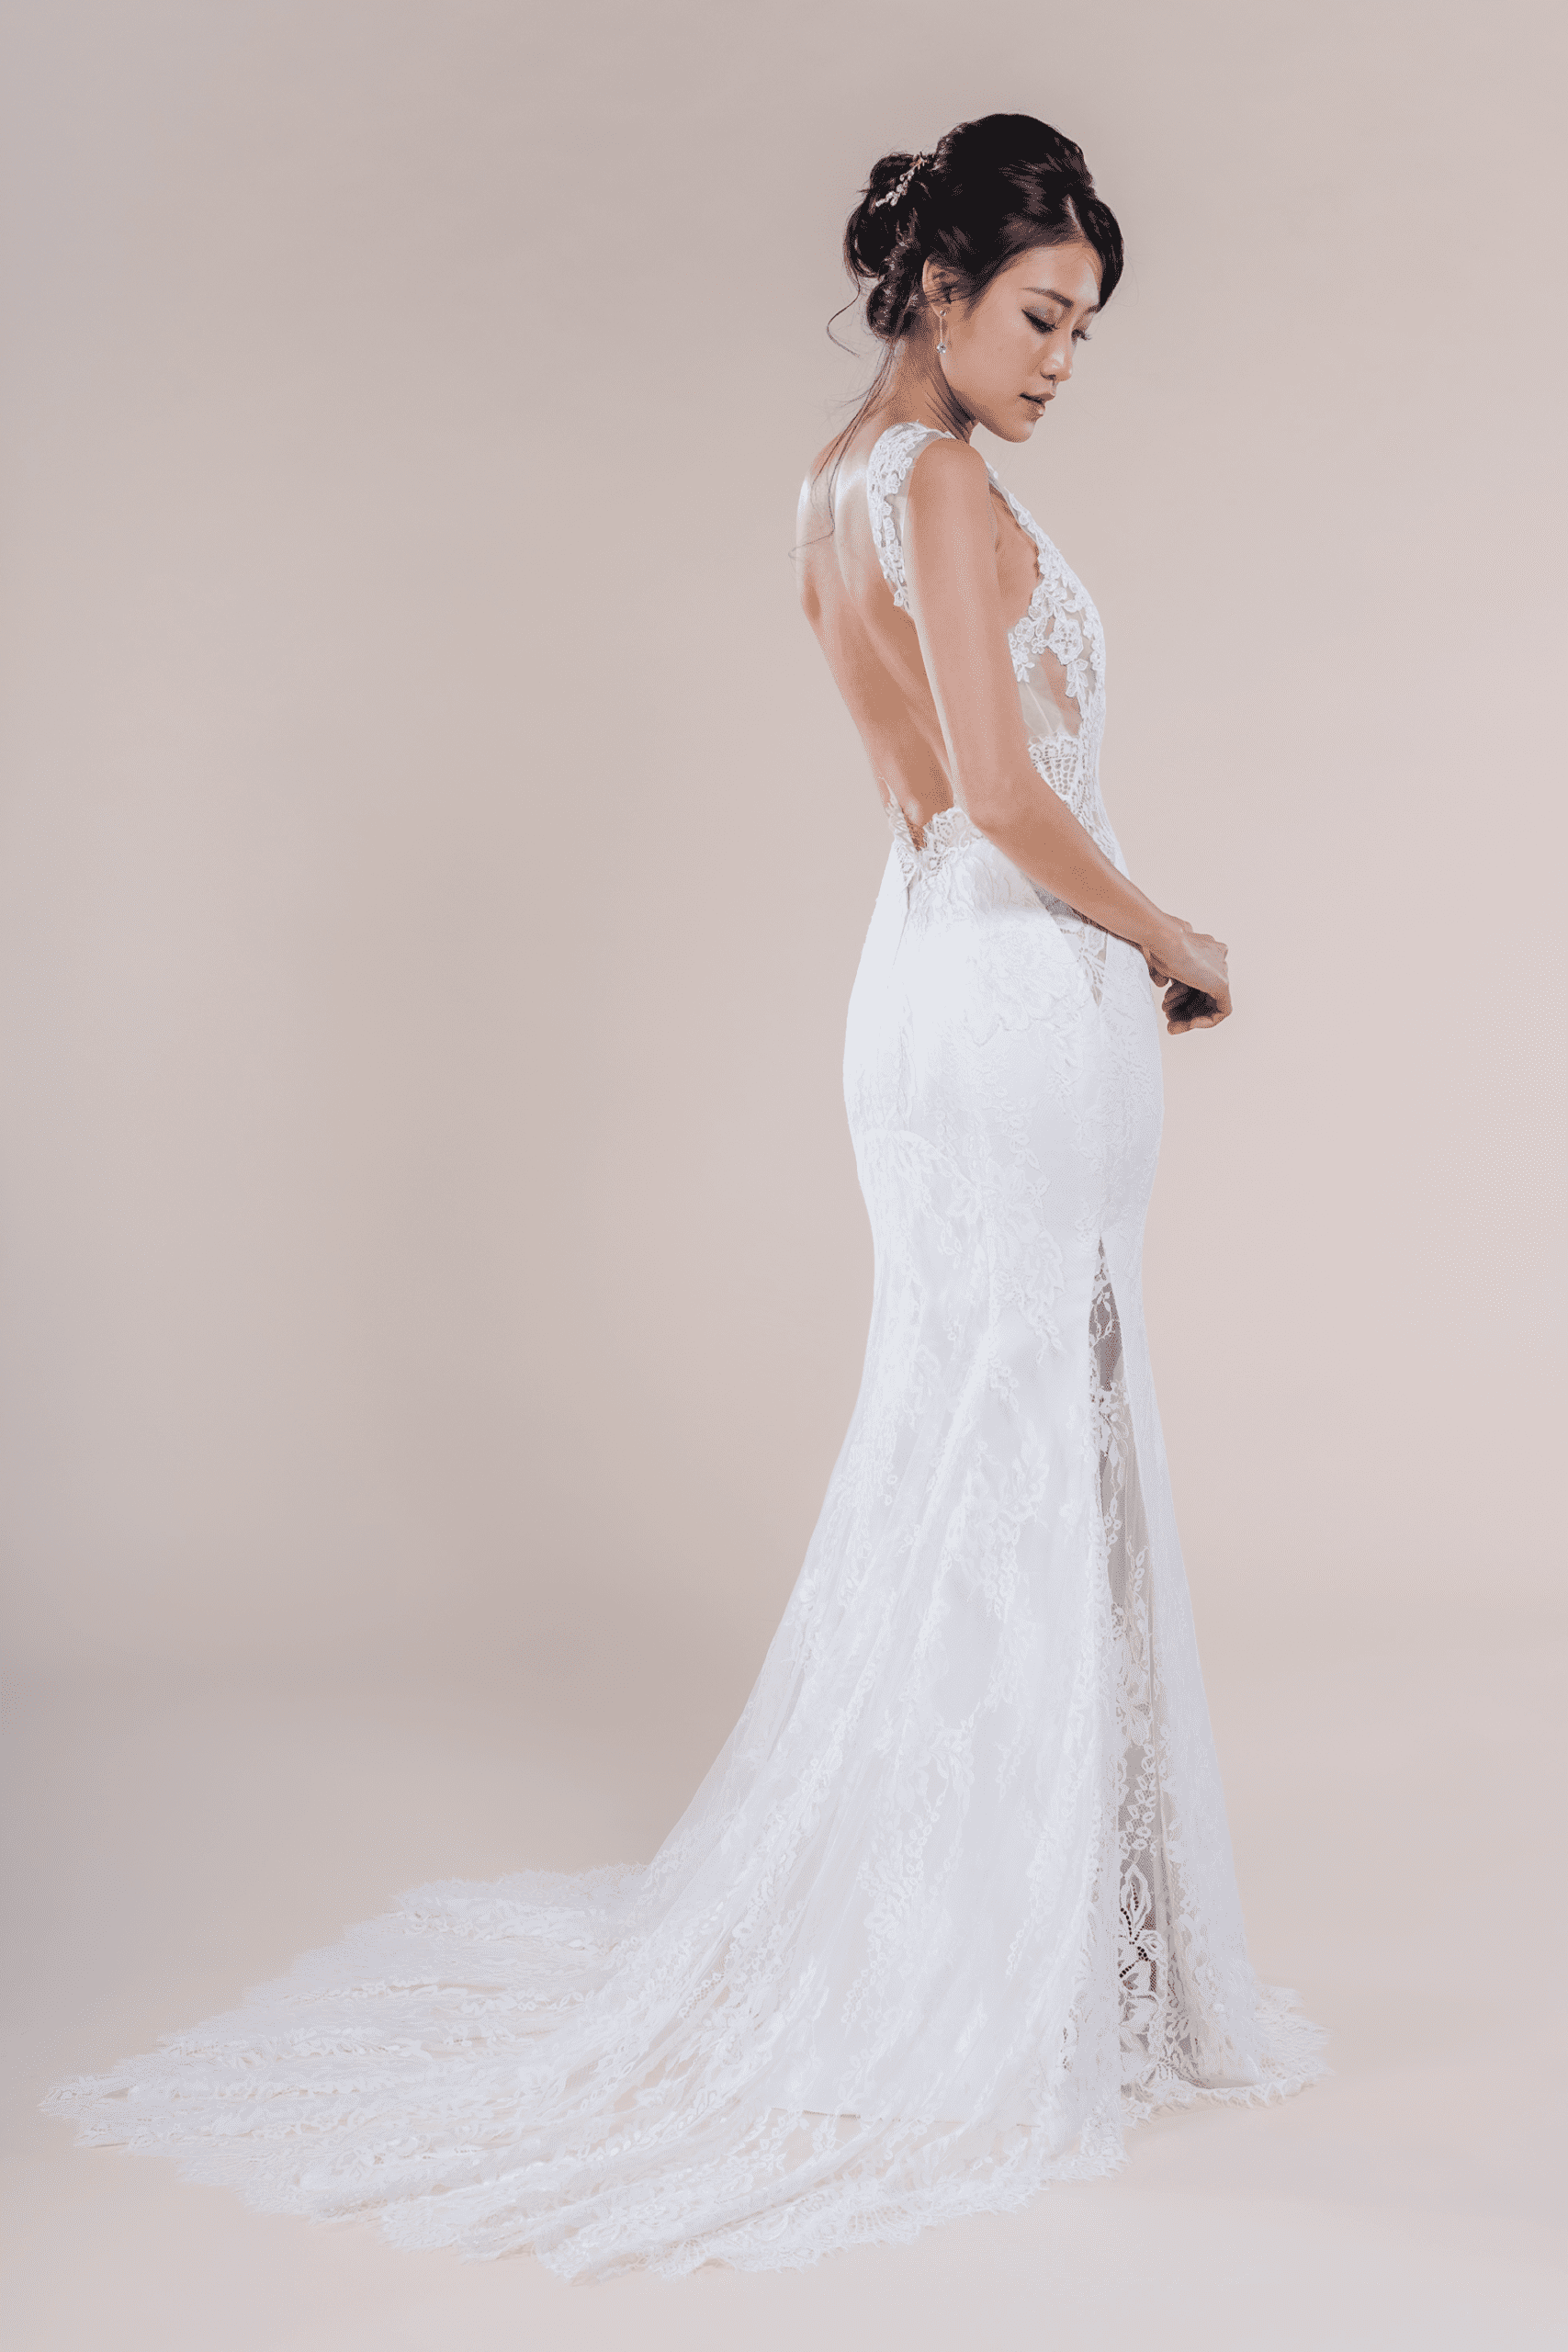 Stevie-affordable-Bridal-Dress-for-rent-in-Singapore